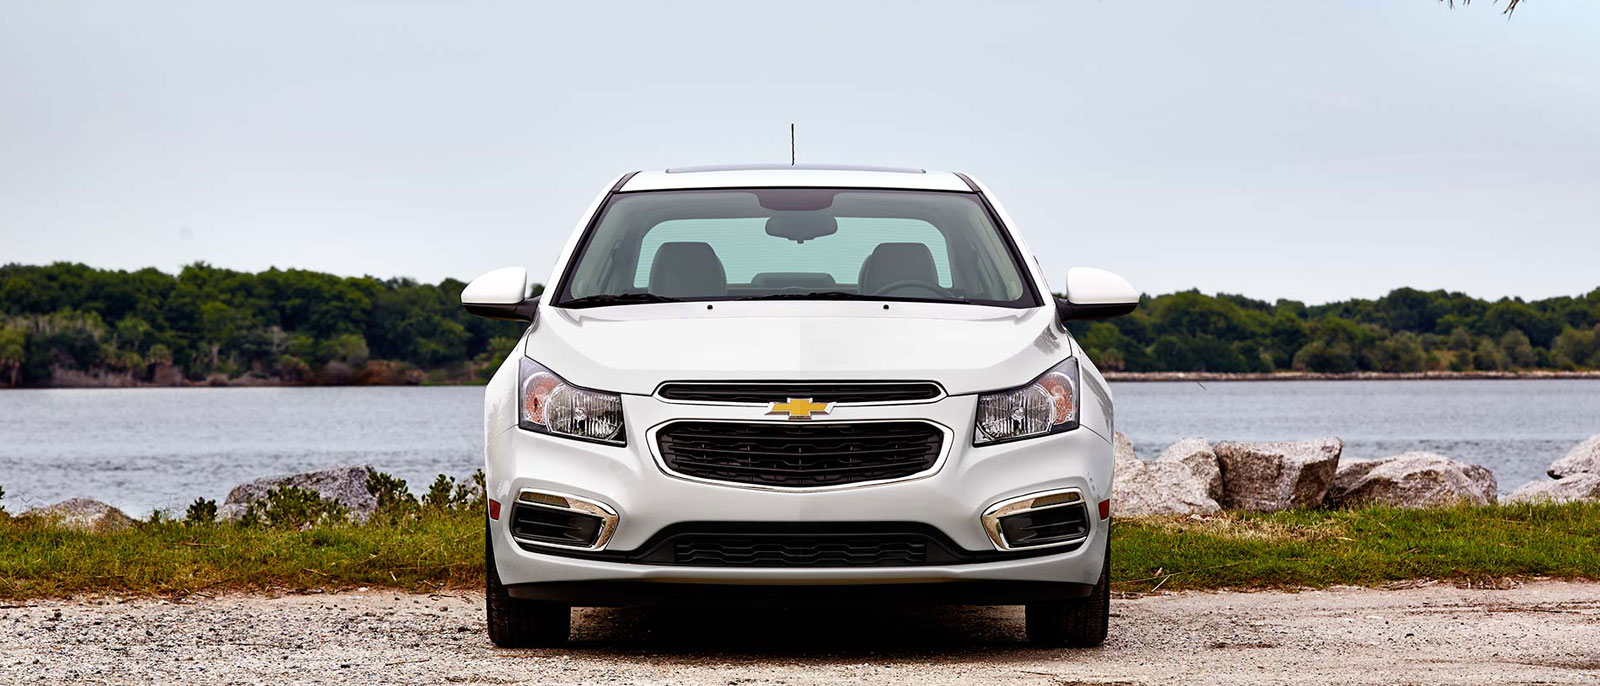 2015 Chevrolet Cruze front view